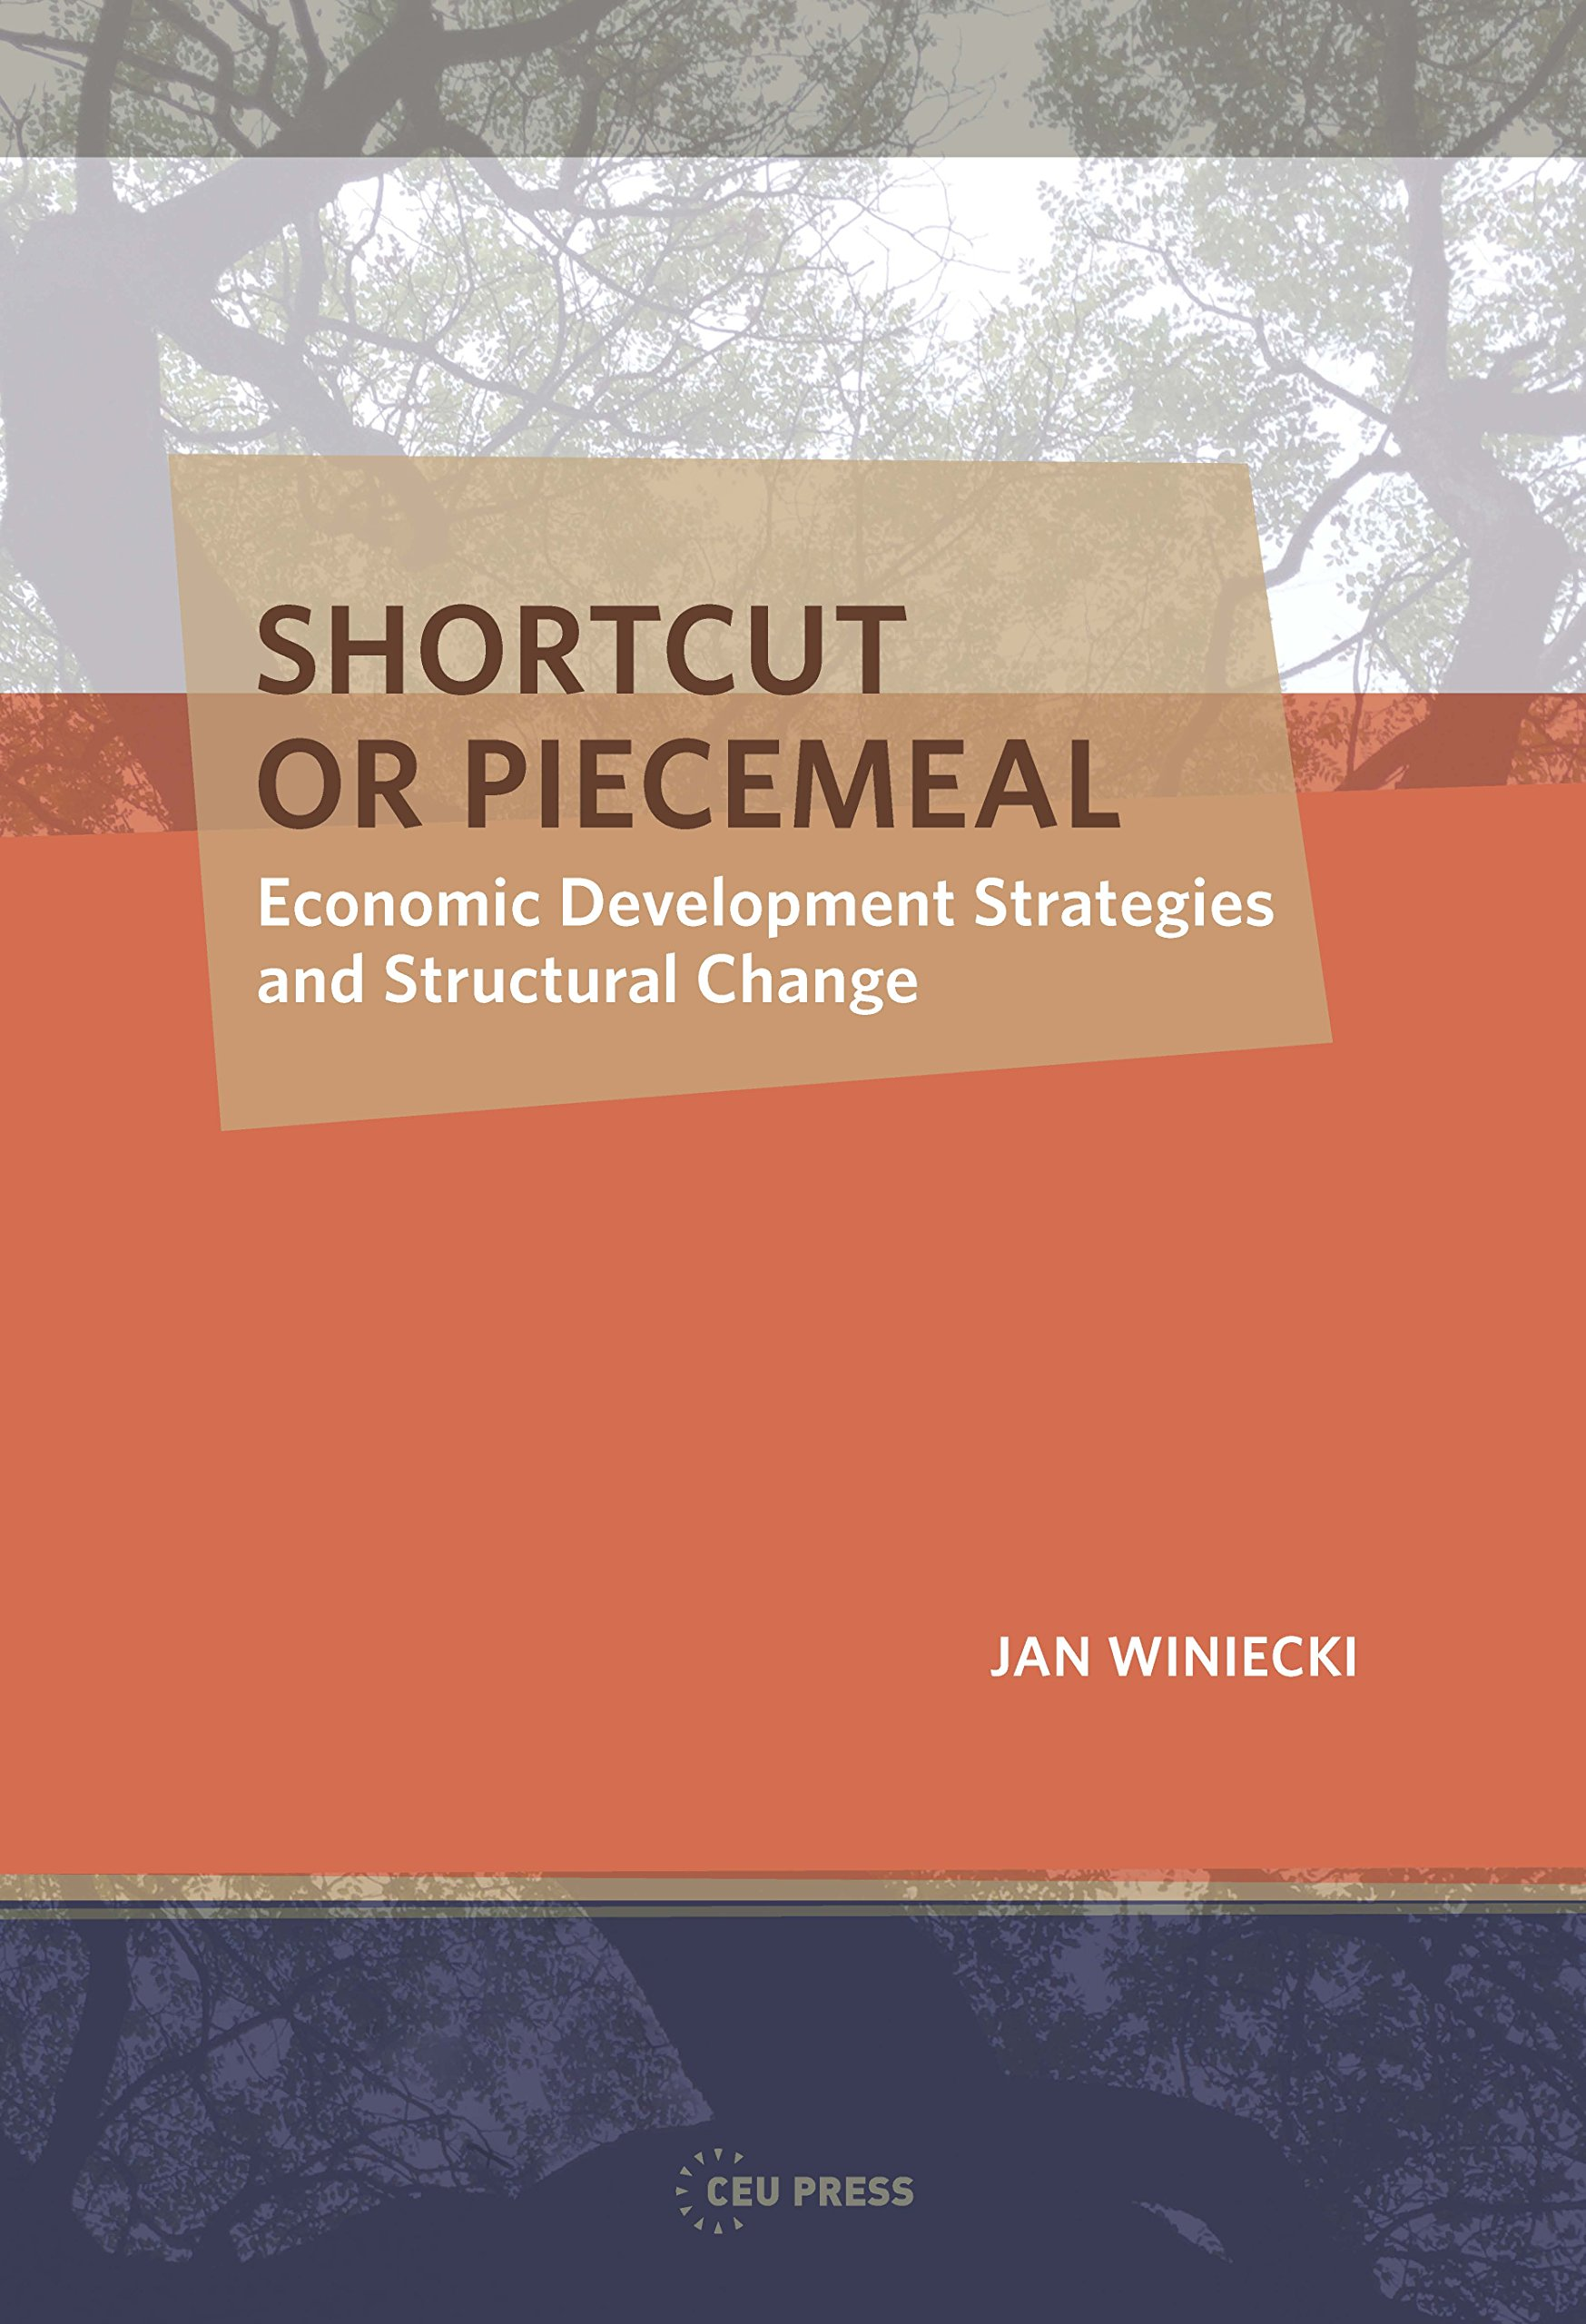 SHORTCUT OR PIECEMEAL: Economic Development Strategies and Structural Change